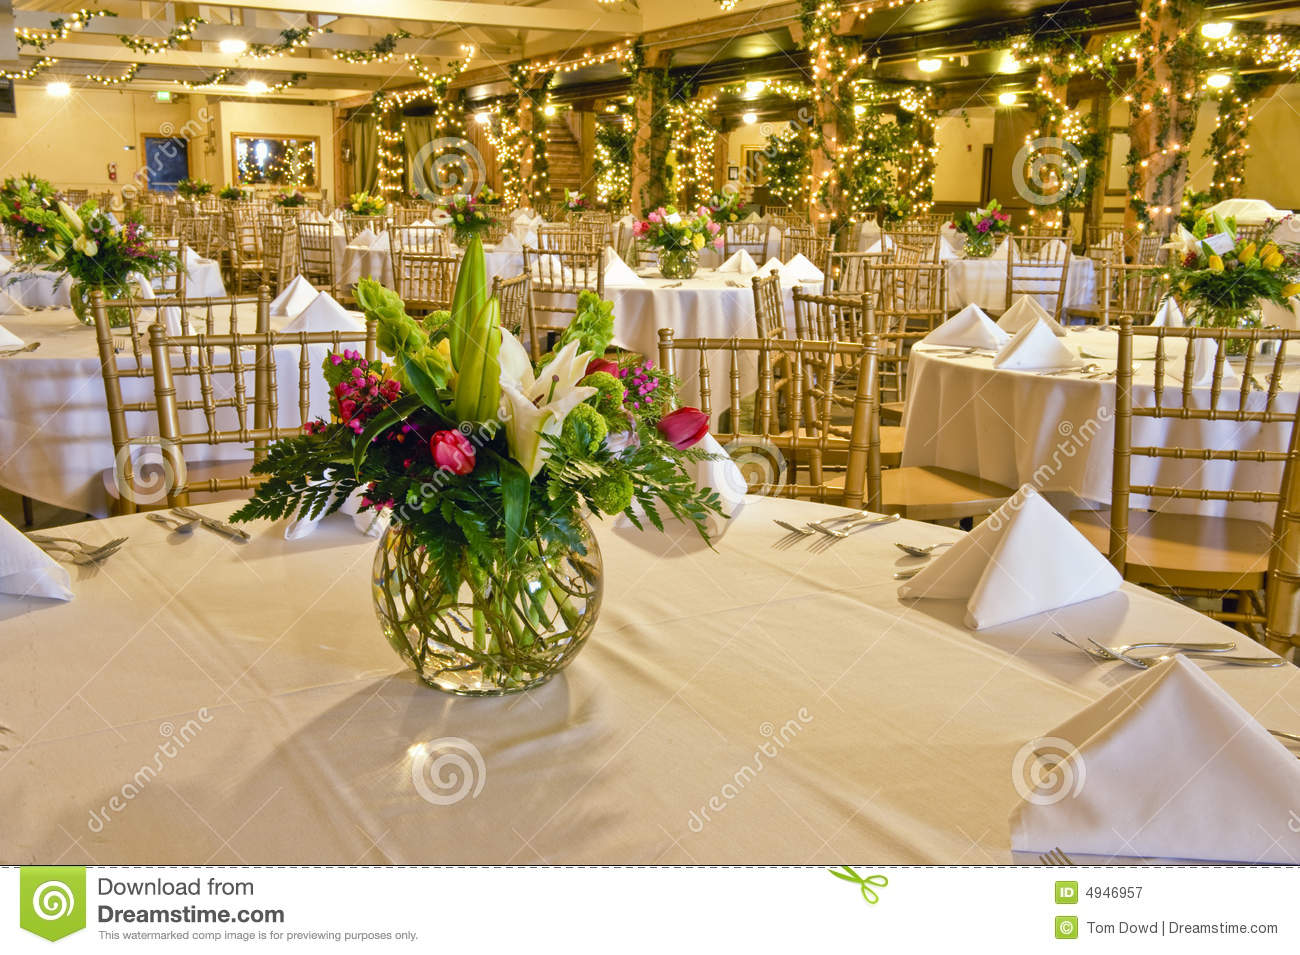 Flower Centerpiece On Table